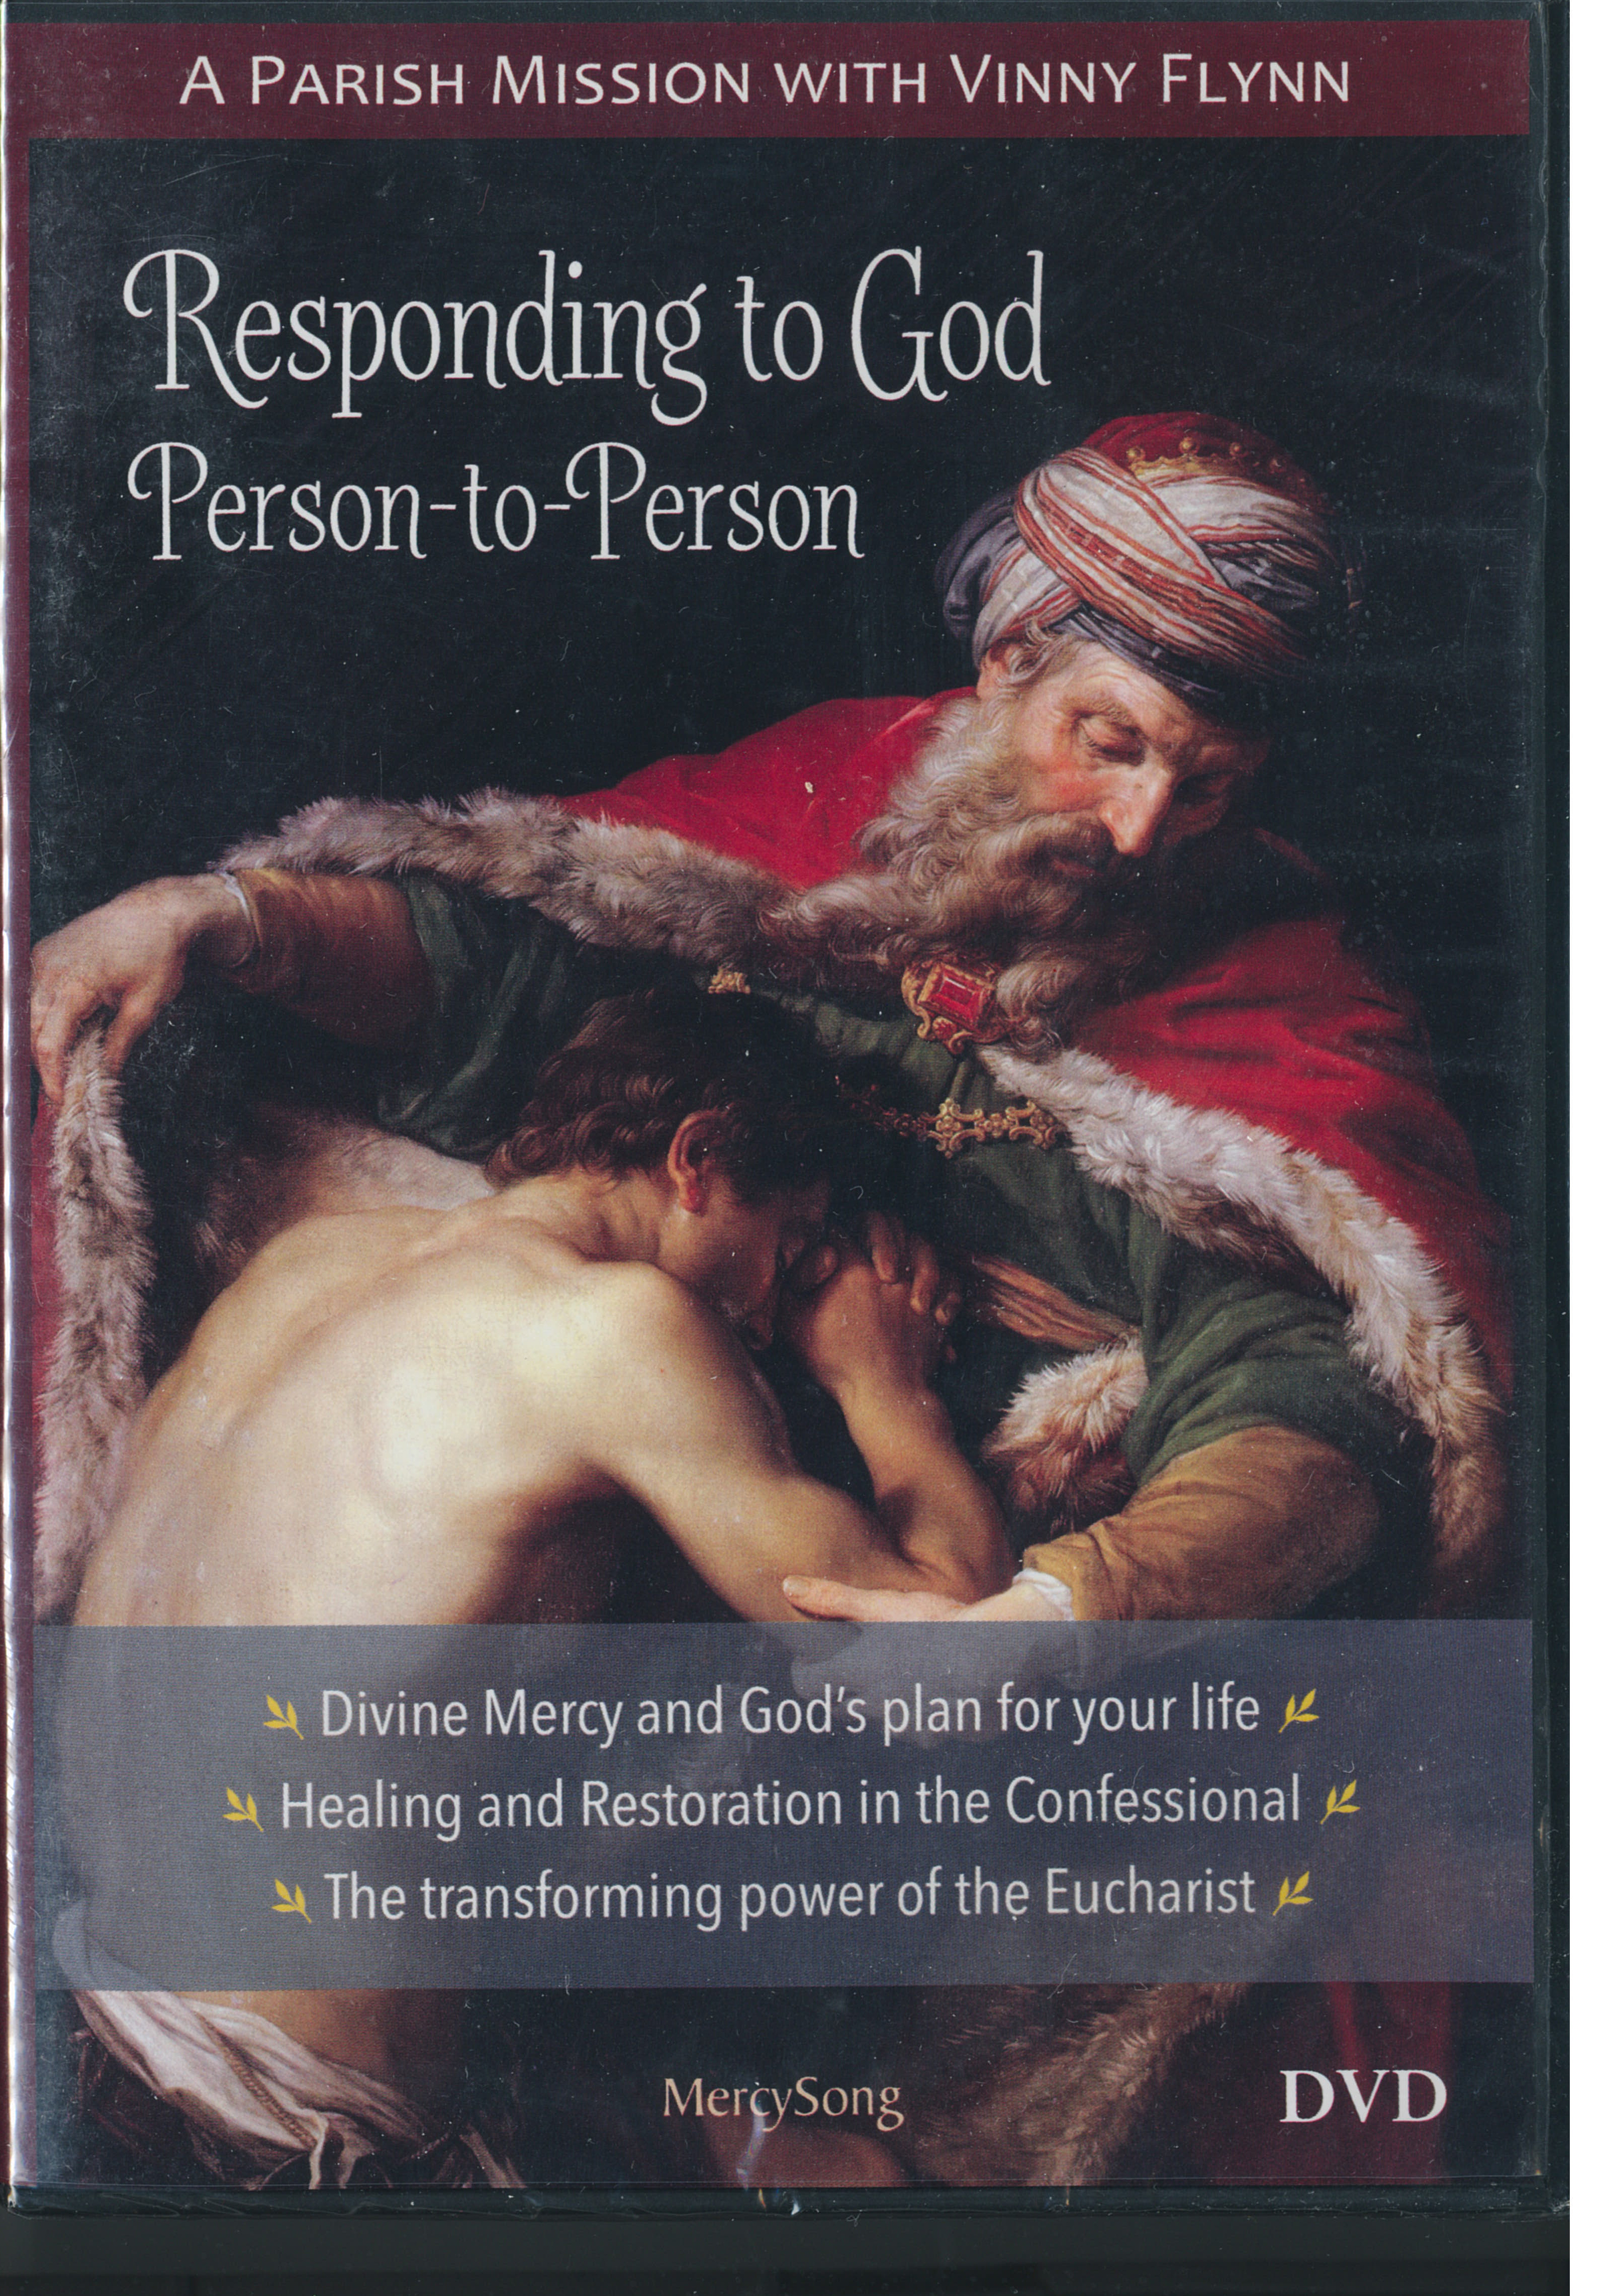 DVD-Responding To God Person-To-Person 9781884479526